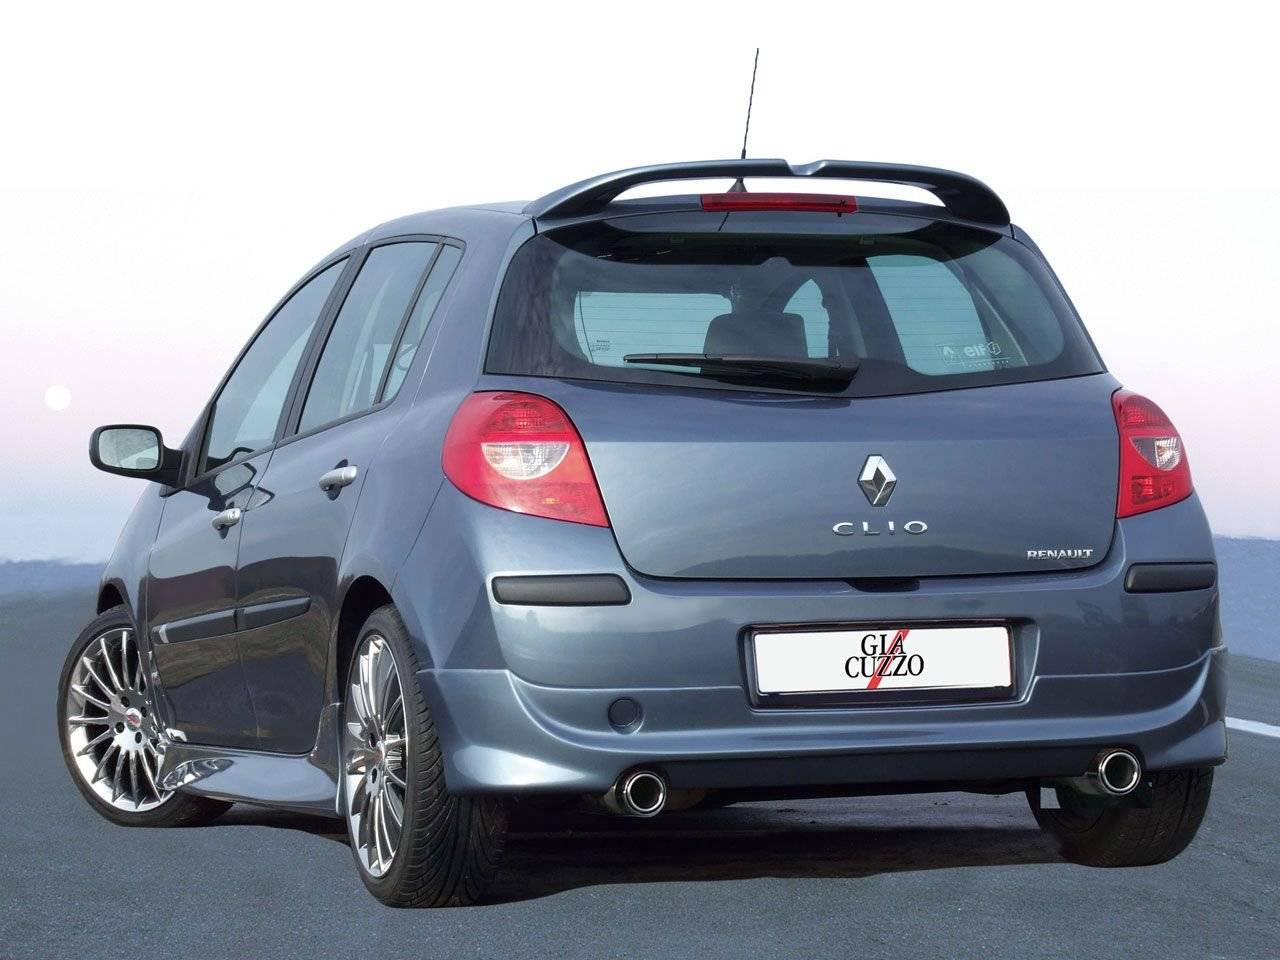 giacuzzo komt met bodykit renault clio tuning styling. Black Bedroom Furniture Sets. Home Design Ideas